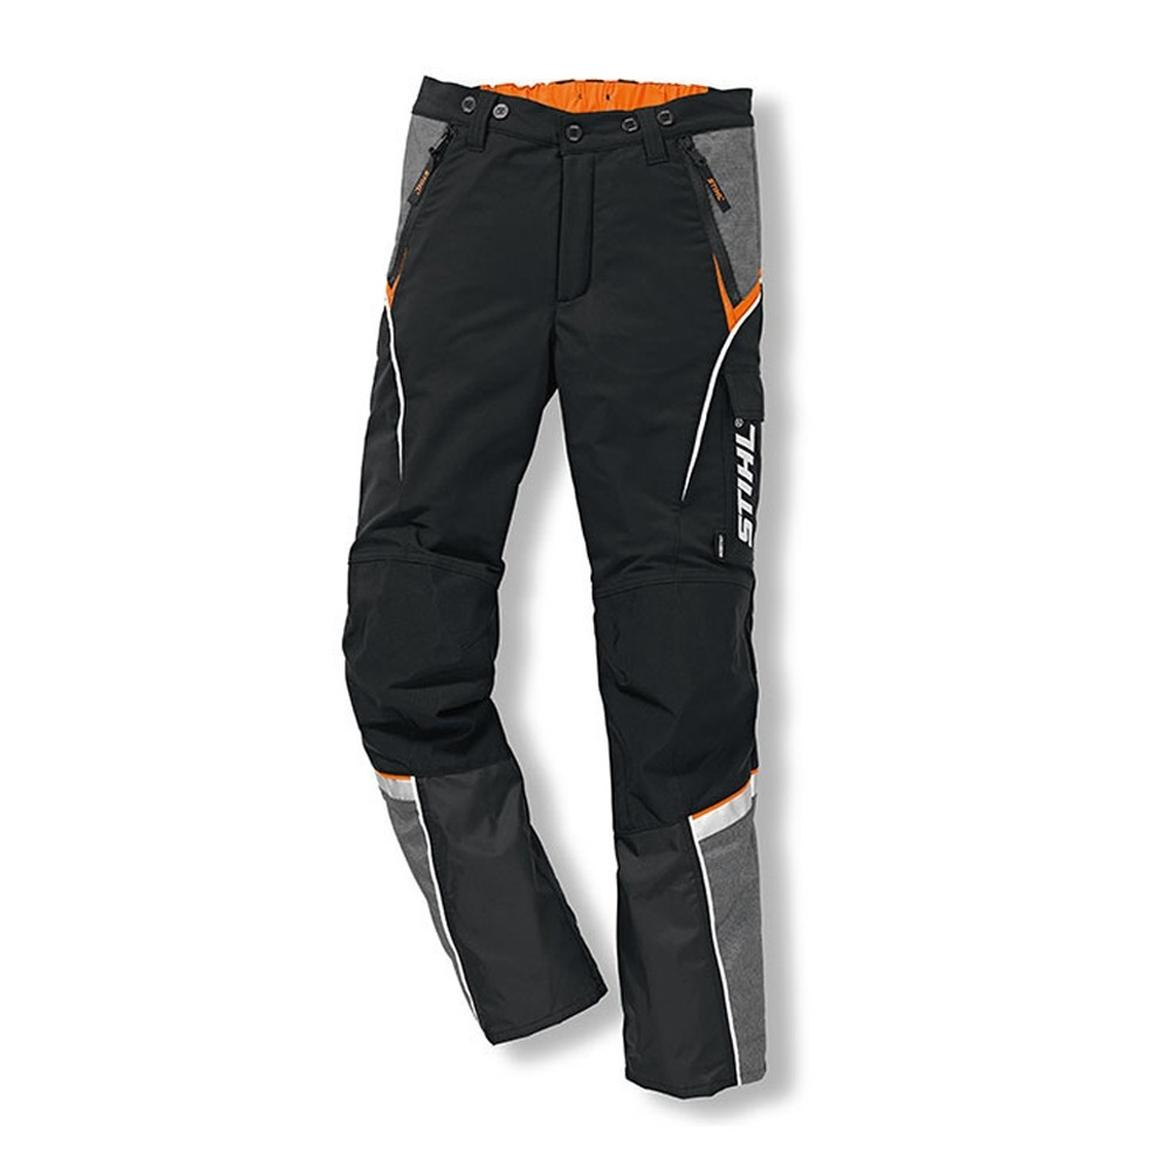 605c4dc6452 Stihl ADVANCE X-LIGHT Chainsaw Trousers Type A - Radmore   Tucker